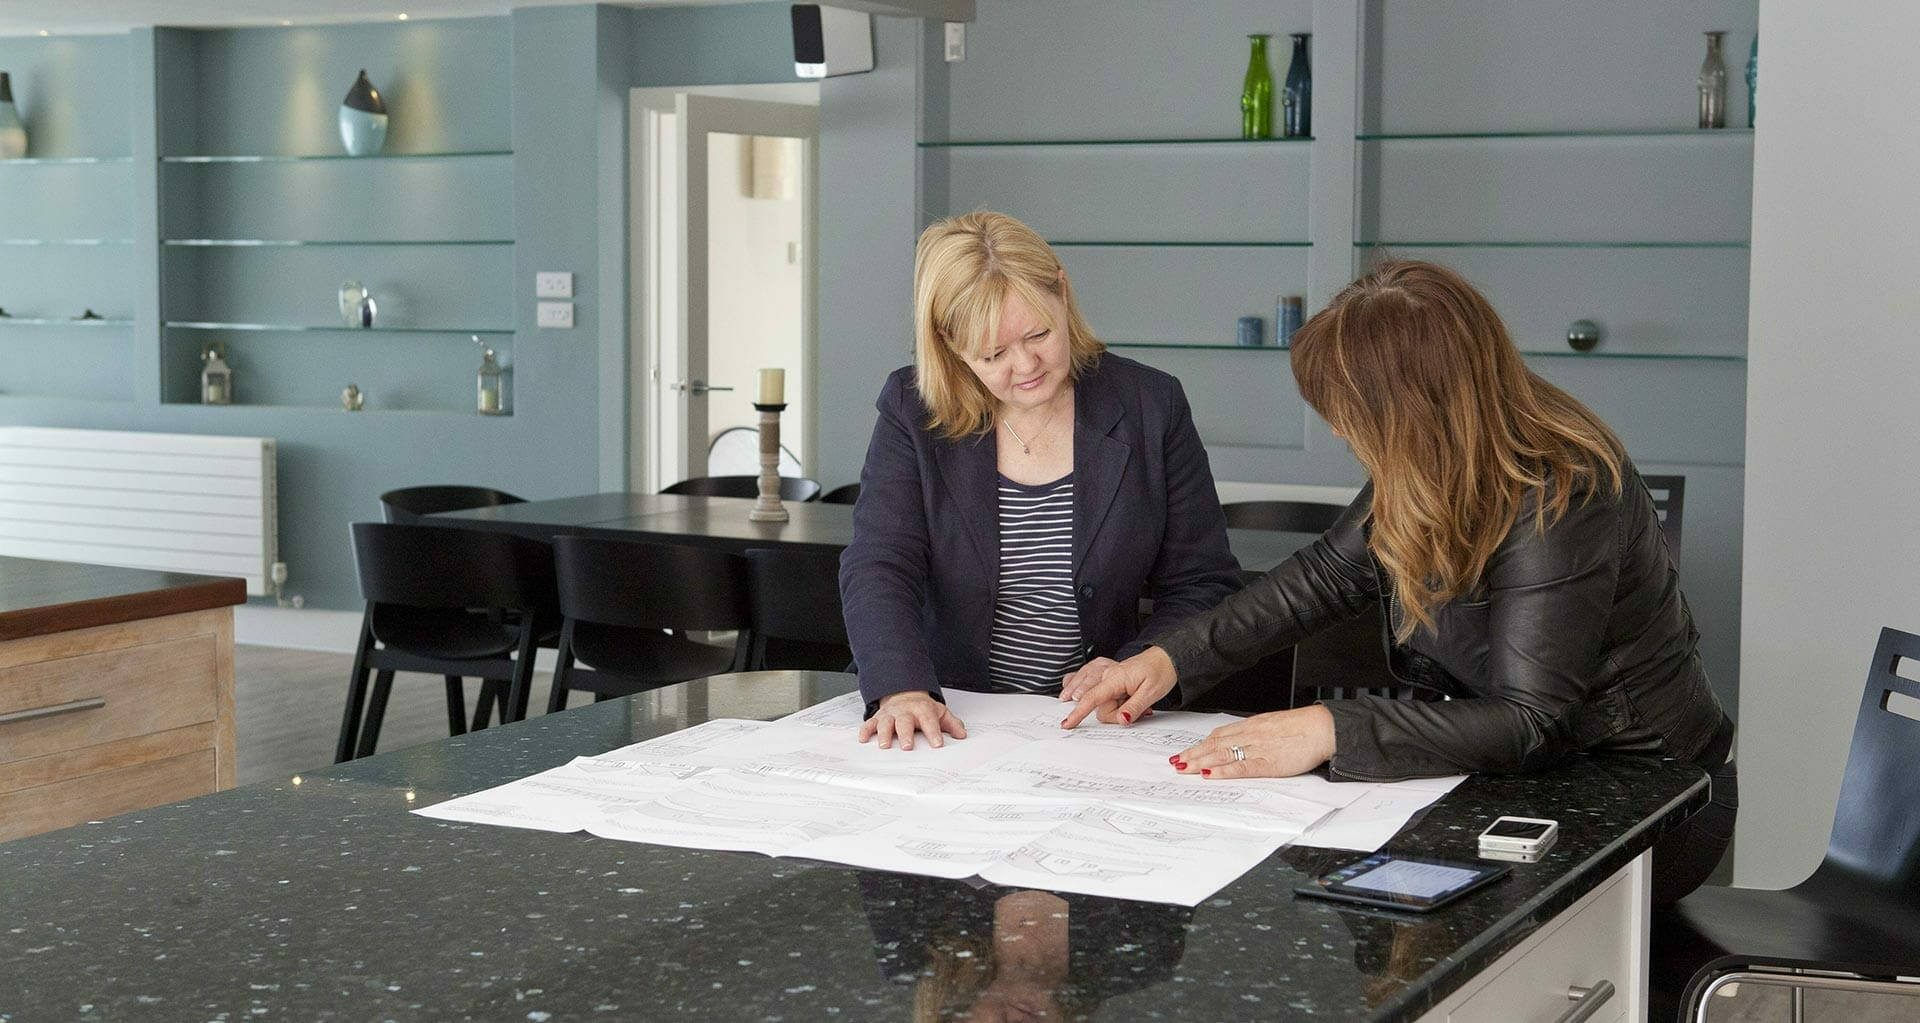 How to choose an interior designer – checklist